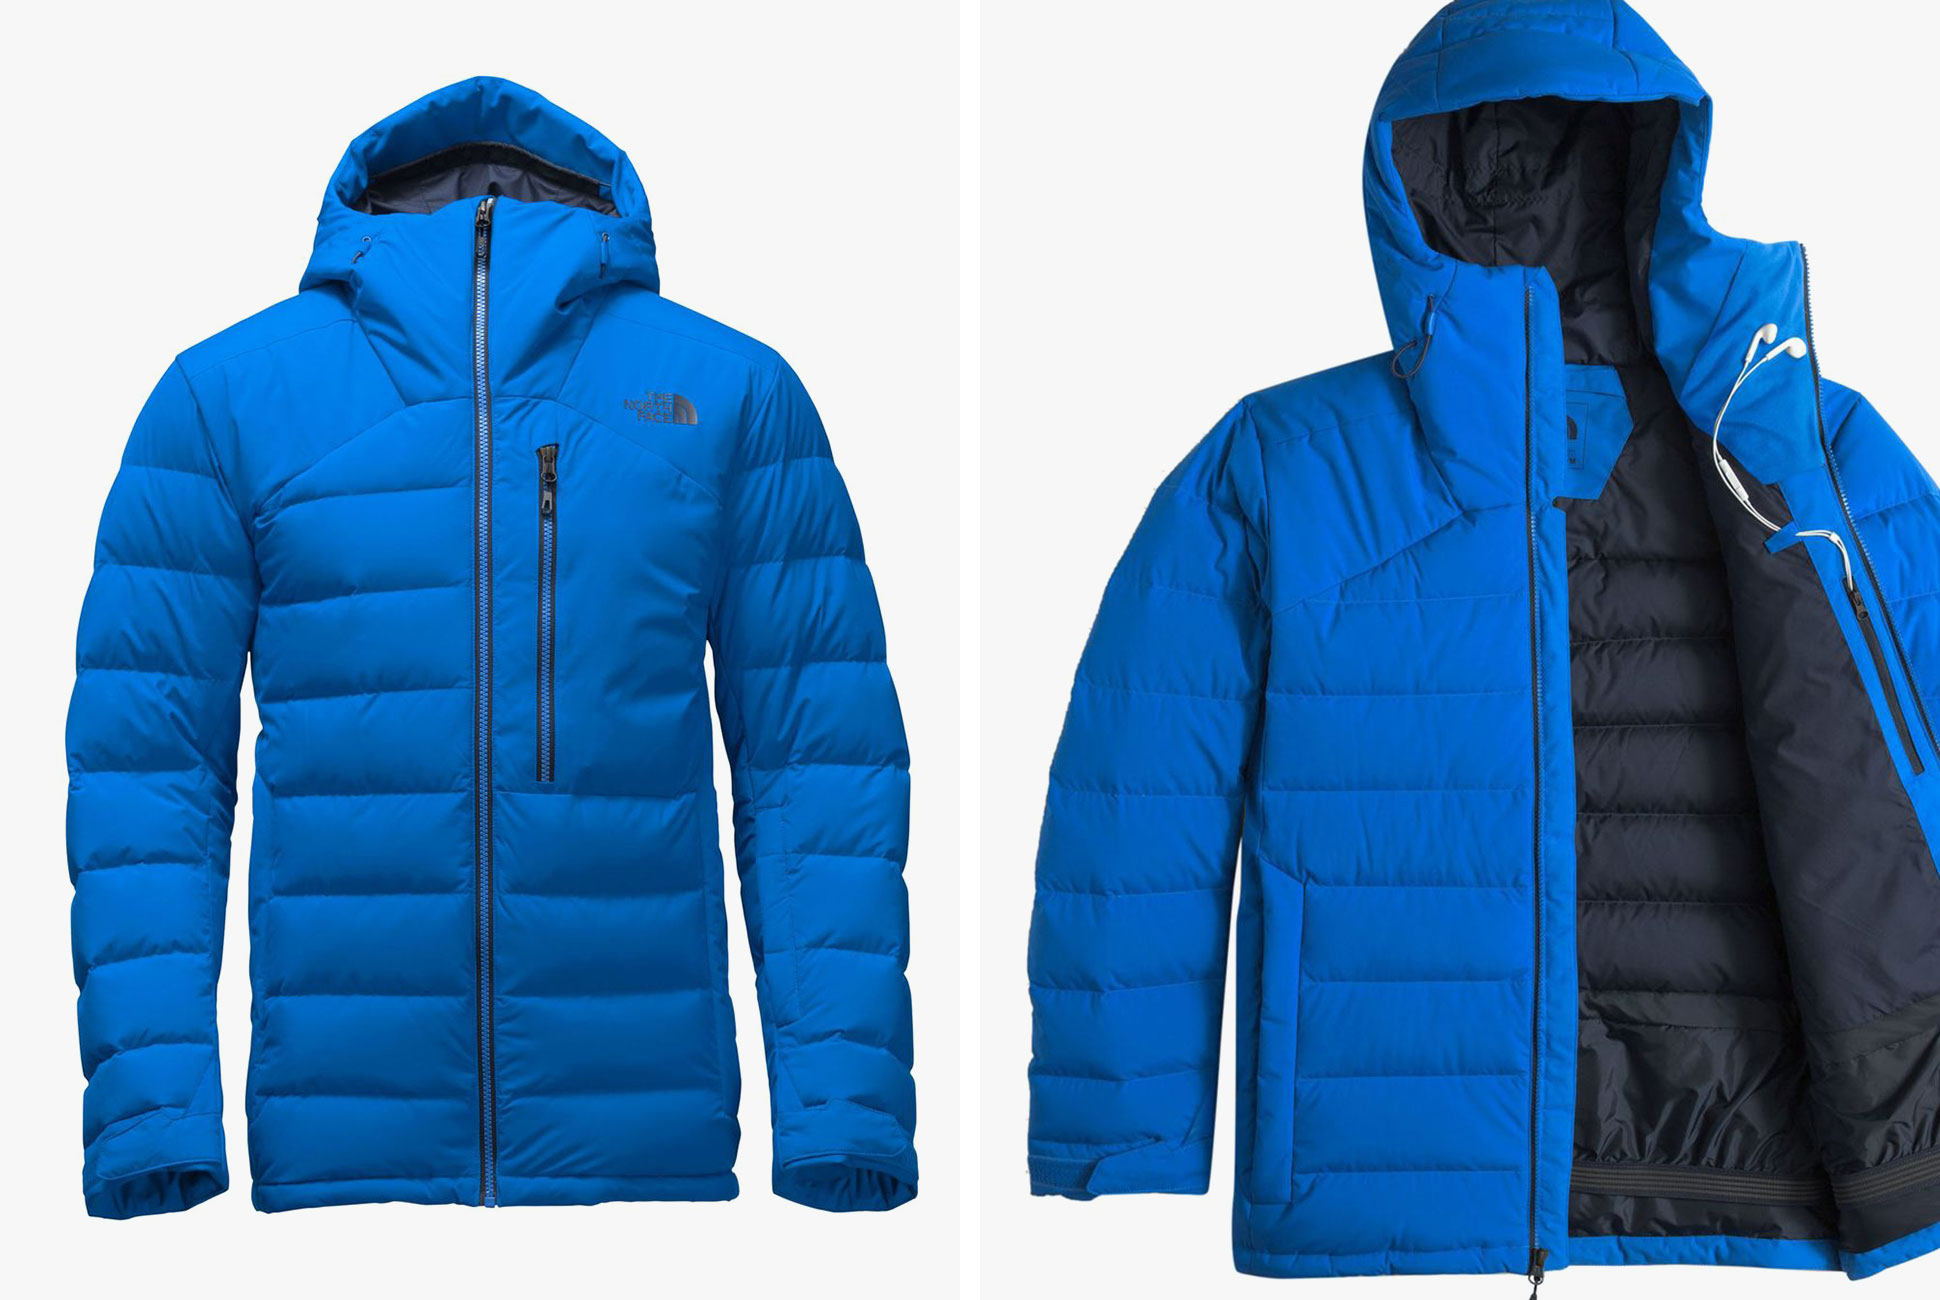 best for skiing light: down jackets are commonly used in tandem with  waterproof shells MUNGJPD